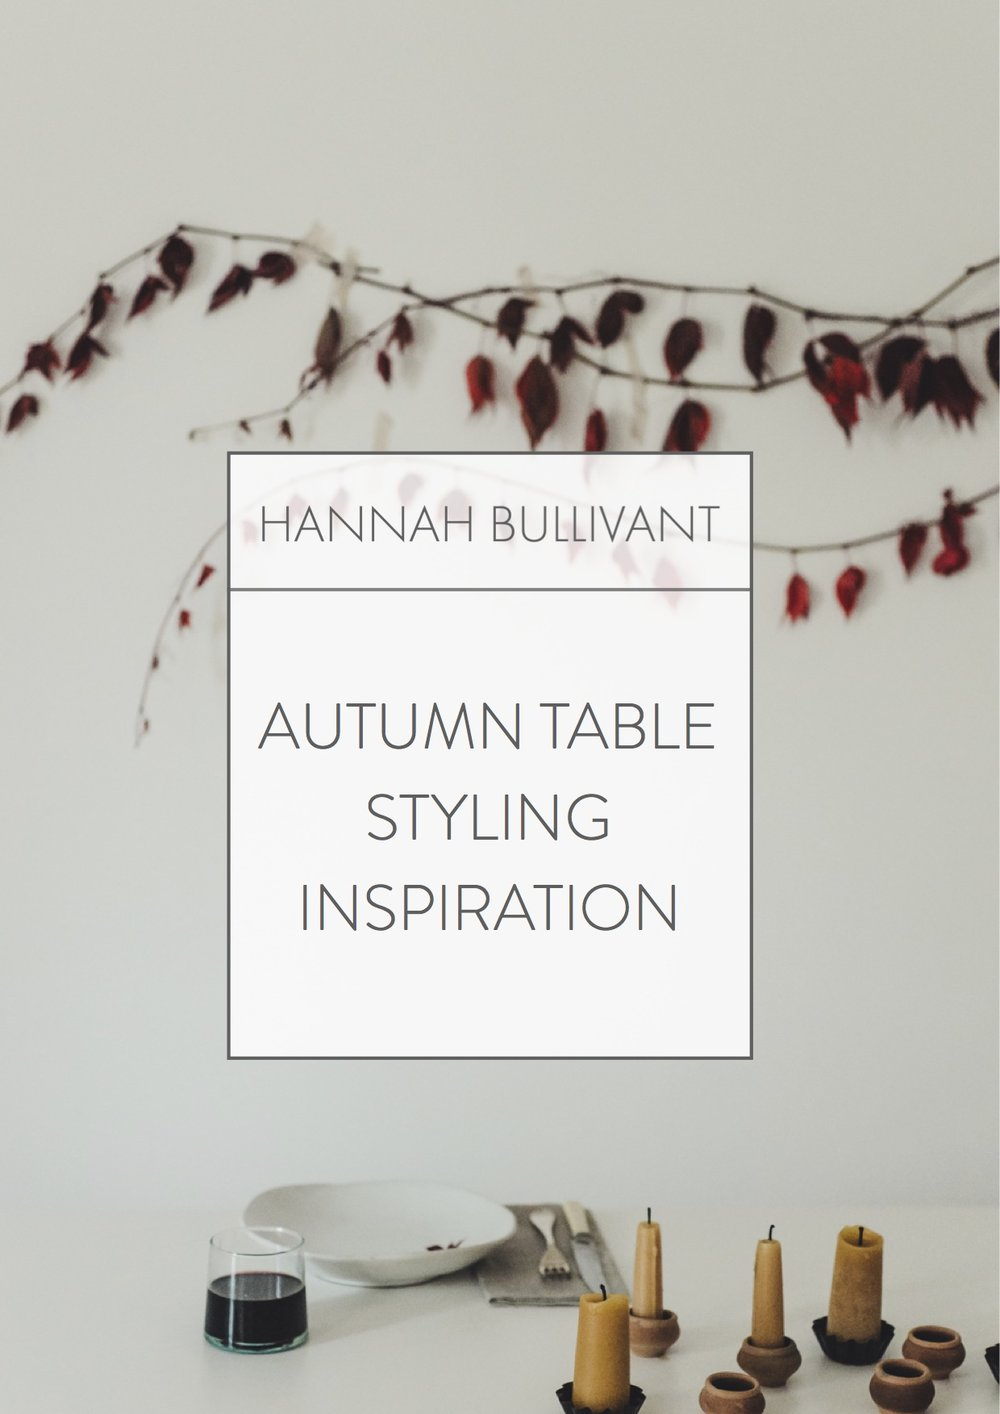 Autumn Table Styling Inspiration | Hannah Bullivant